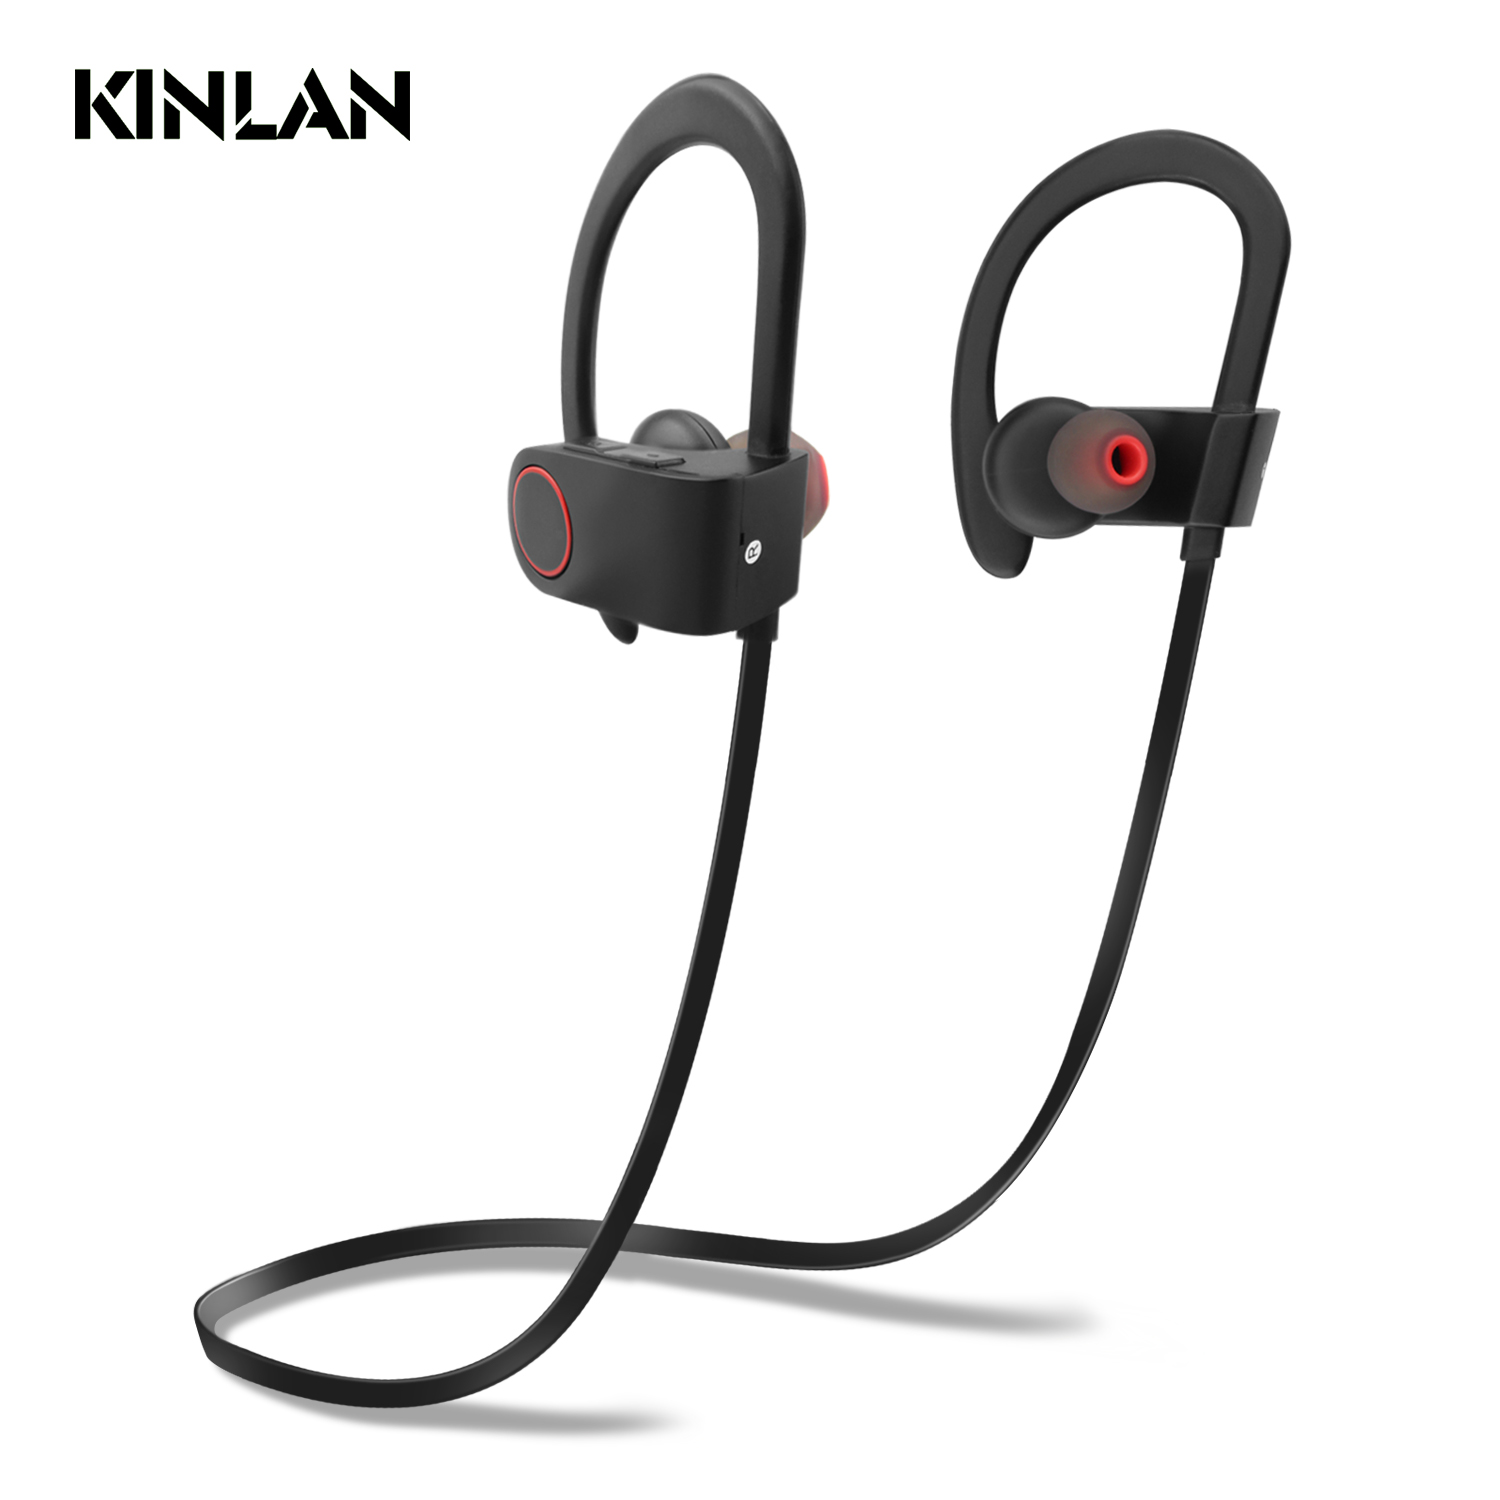 2019 Hot Best Selling Wireless Bluetooth Earbuds 5 0 With Charge